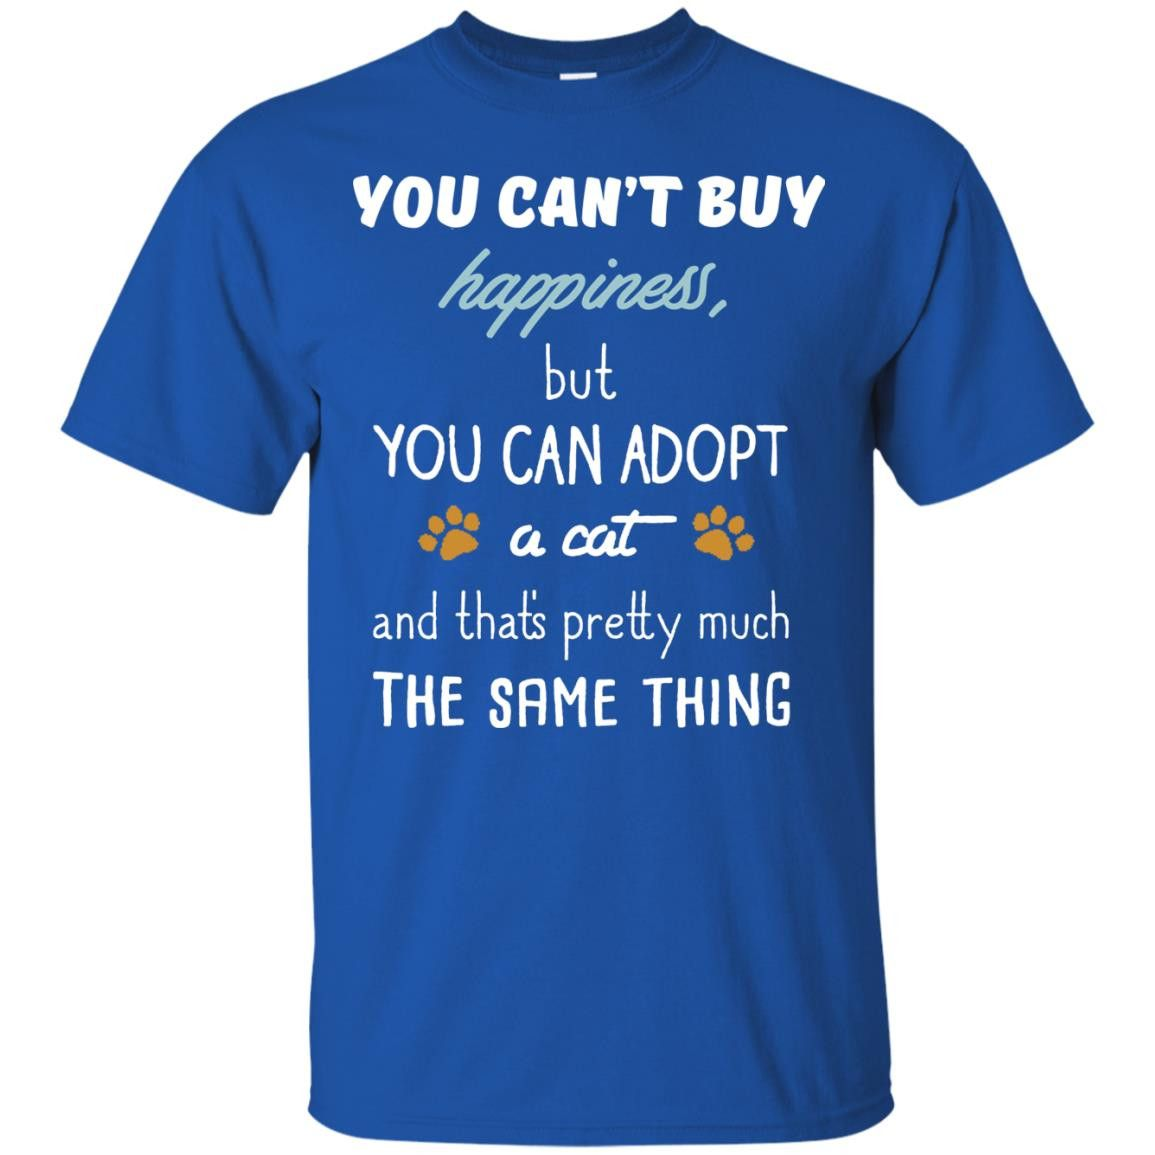 Cat Shirts Can't Buy Happiness but Can Buy A Cat T-shirts Hoodies Sweatshirts